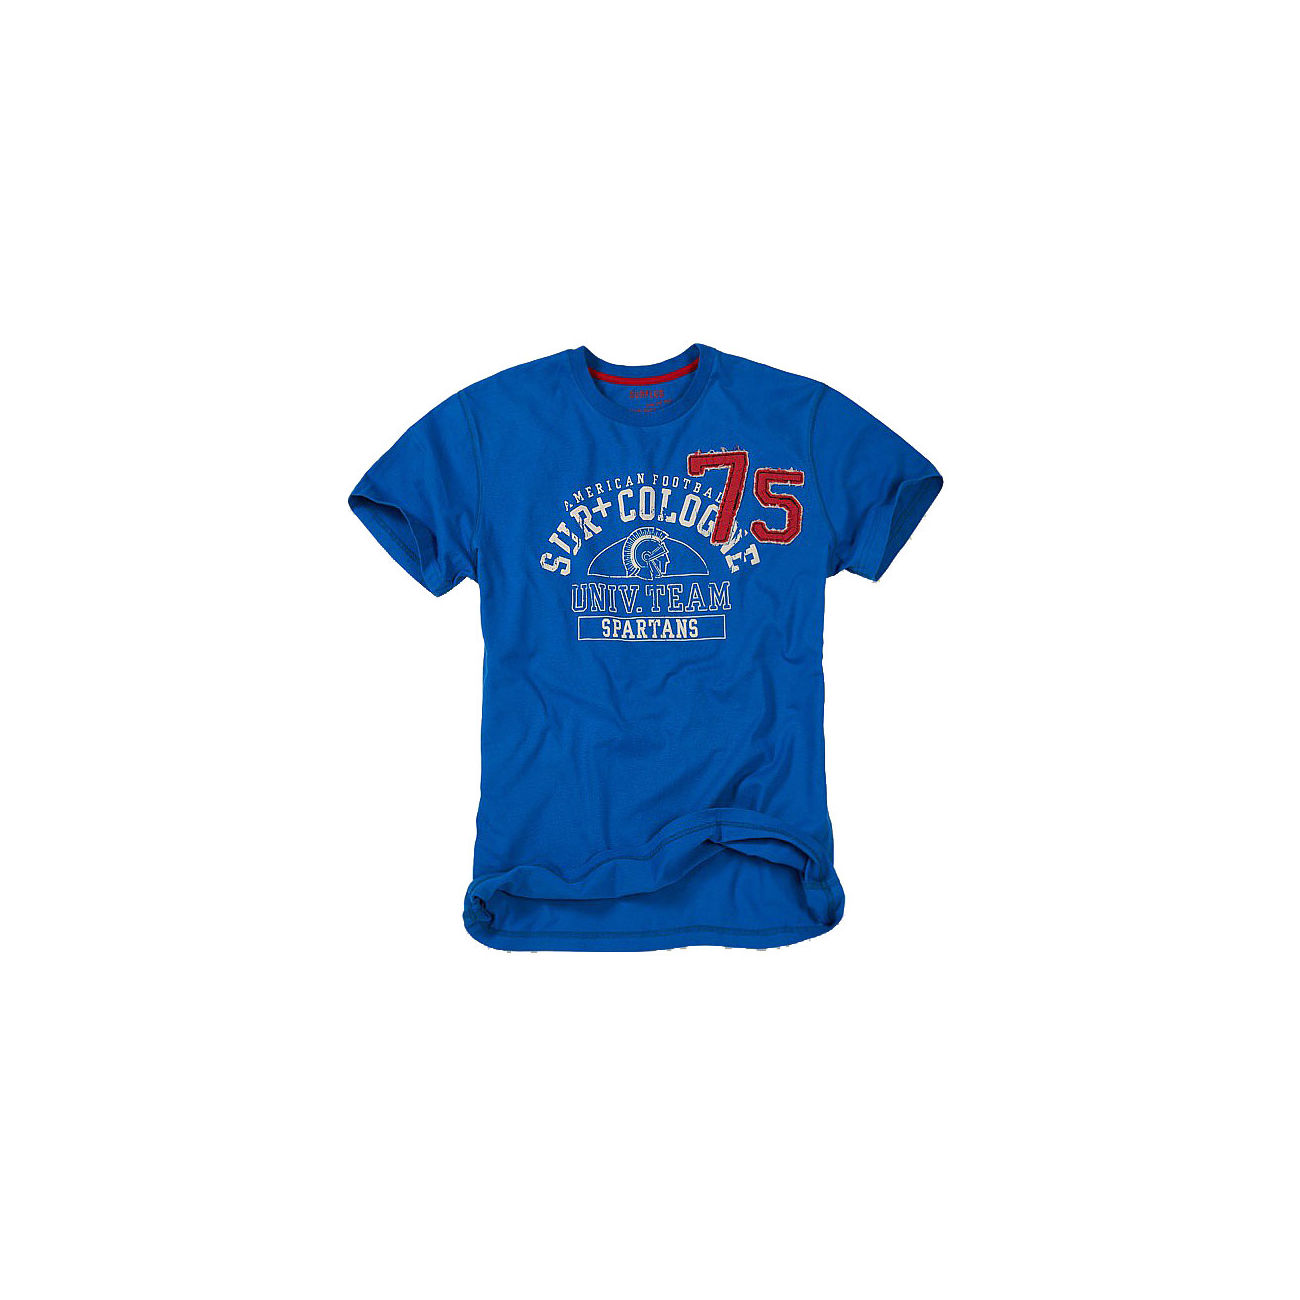 Surplus T-Shirt Spartans Tee blau 0